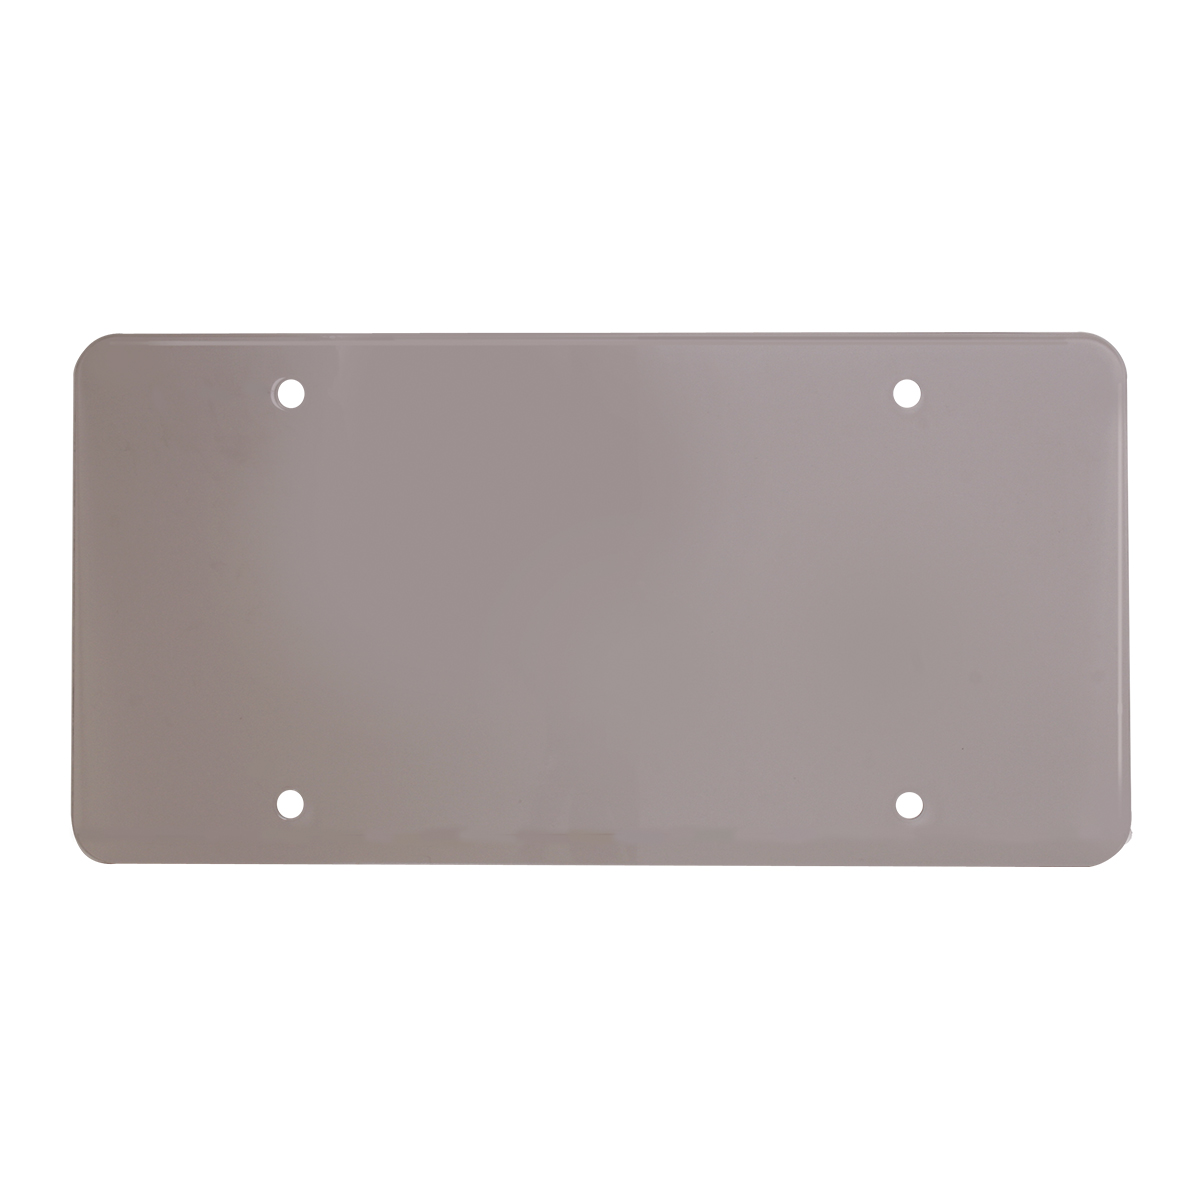 Flat License Plate Protector - Smoke